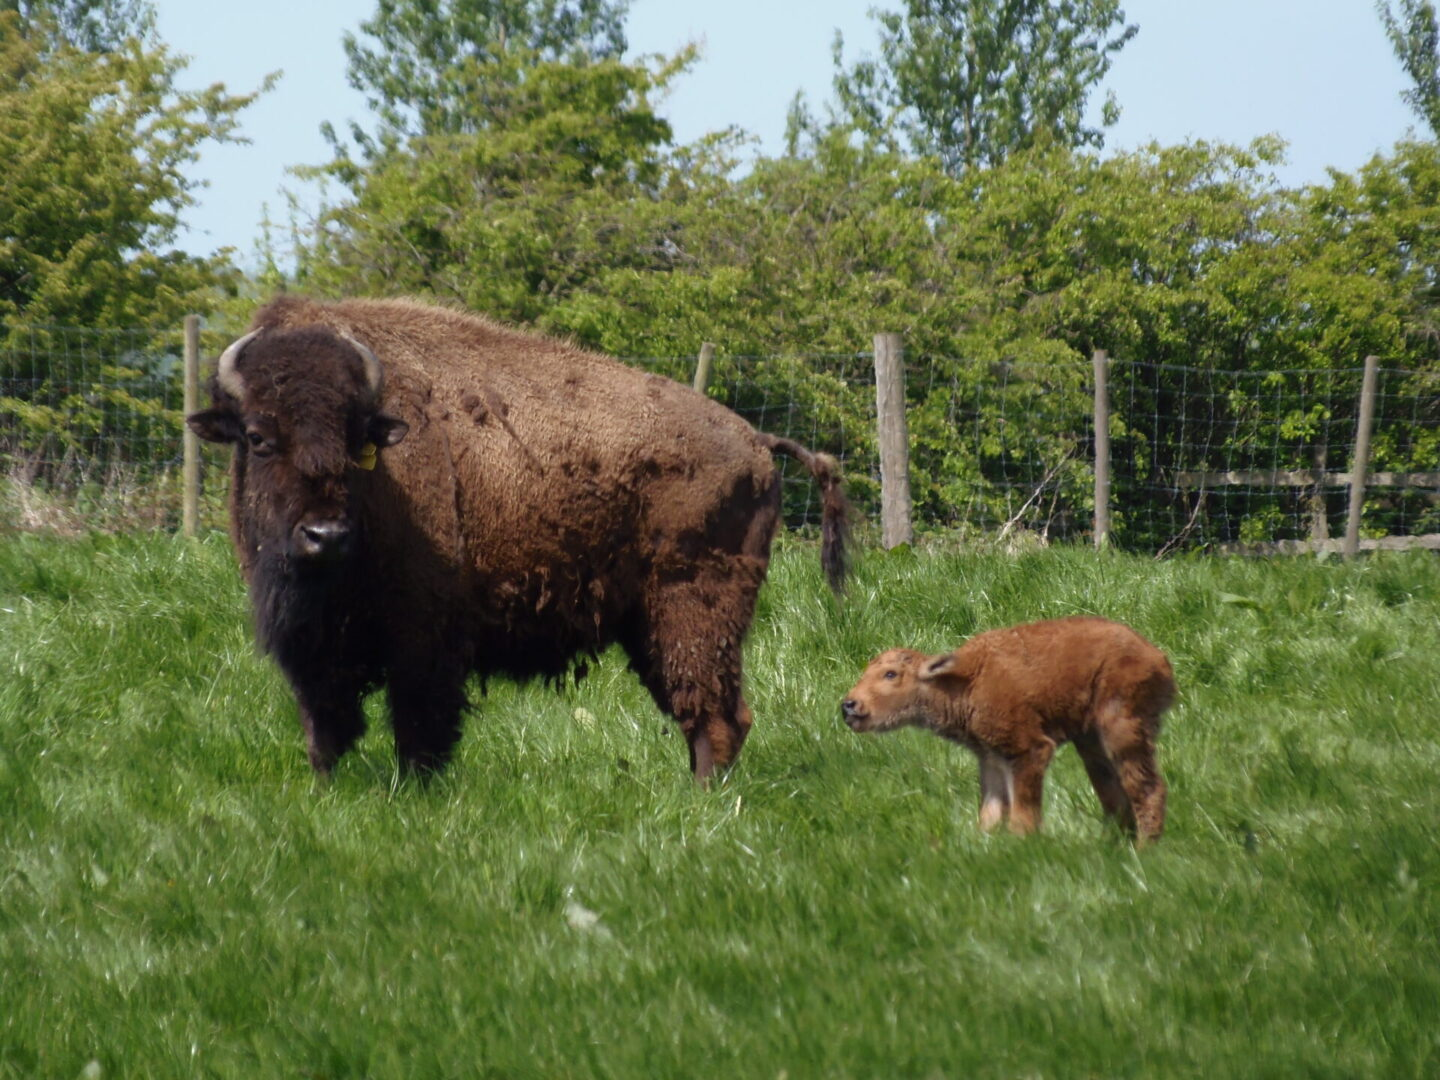 mature bison with young bison